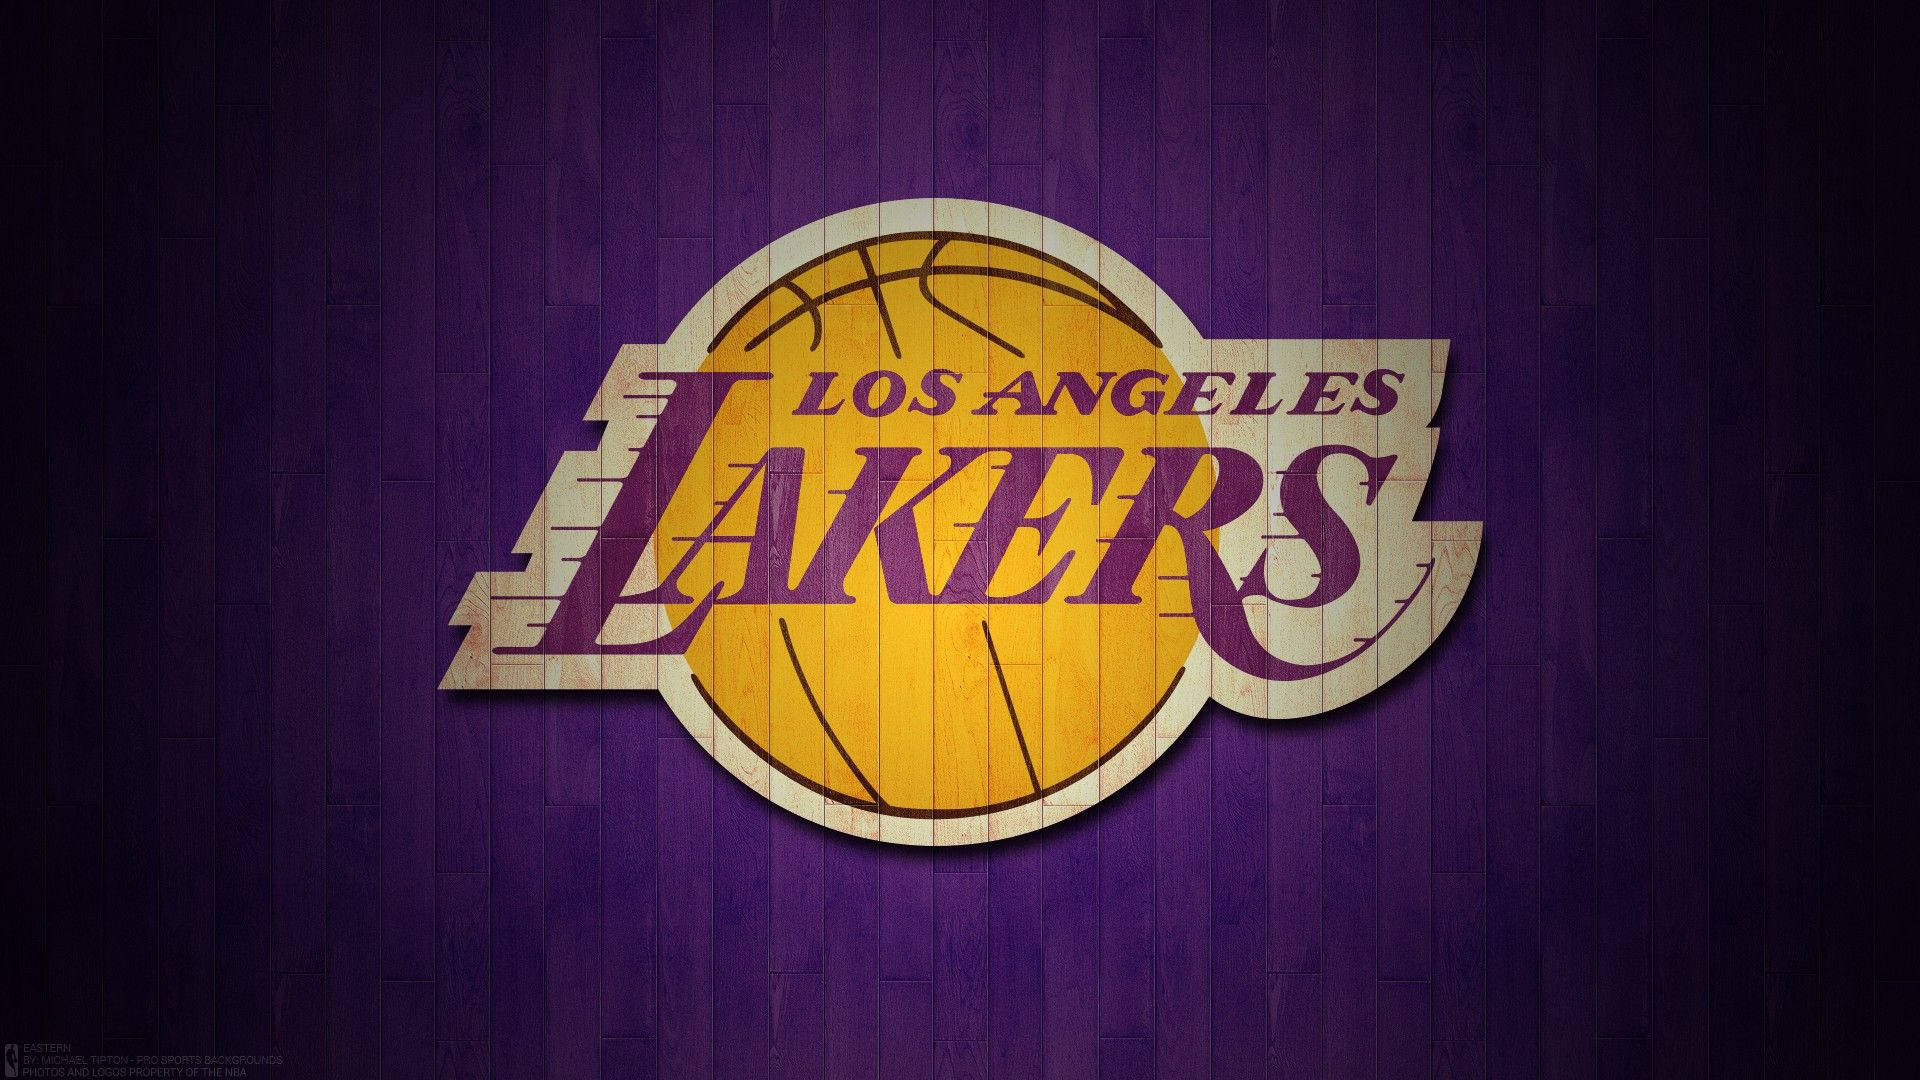 La Lakers Wallpaper For Mac Backgrounds In 2020 Lakers Wallpaper Nba Wallpapers Kobe Bryant Wallpaper